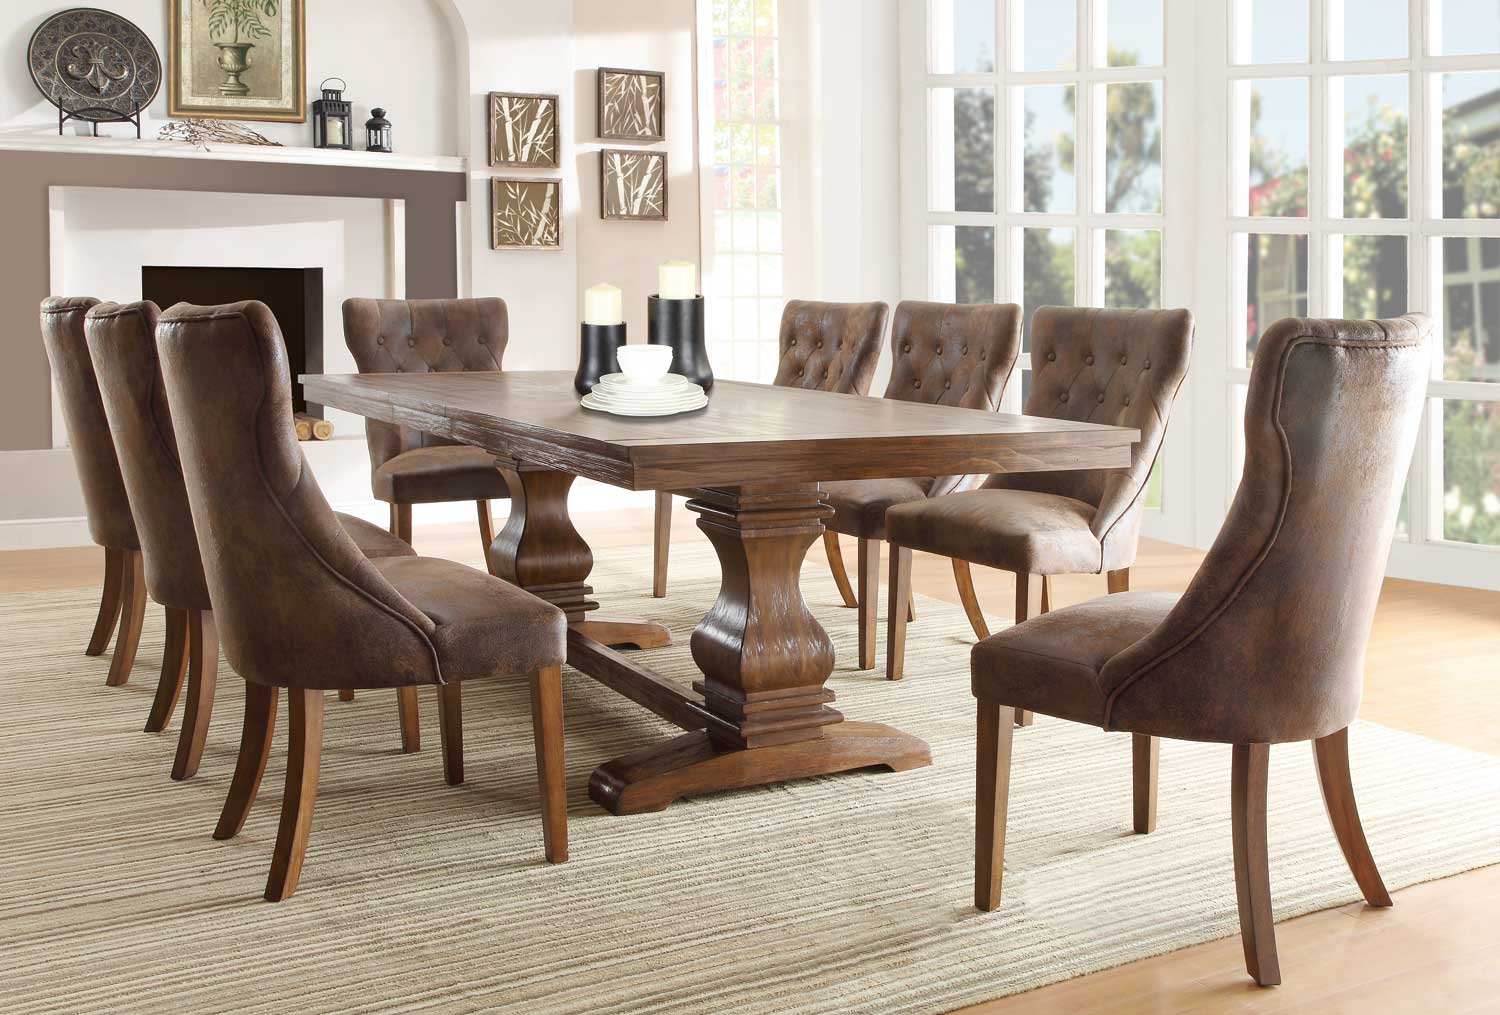 Homelegance Marie Louise Dining Set - Rustic Oak Brown